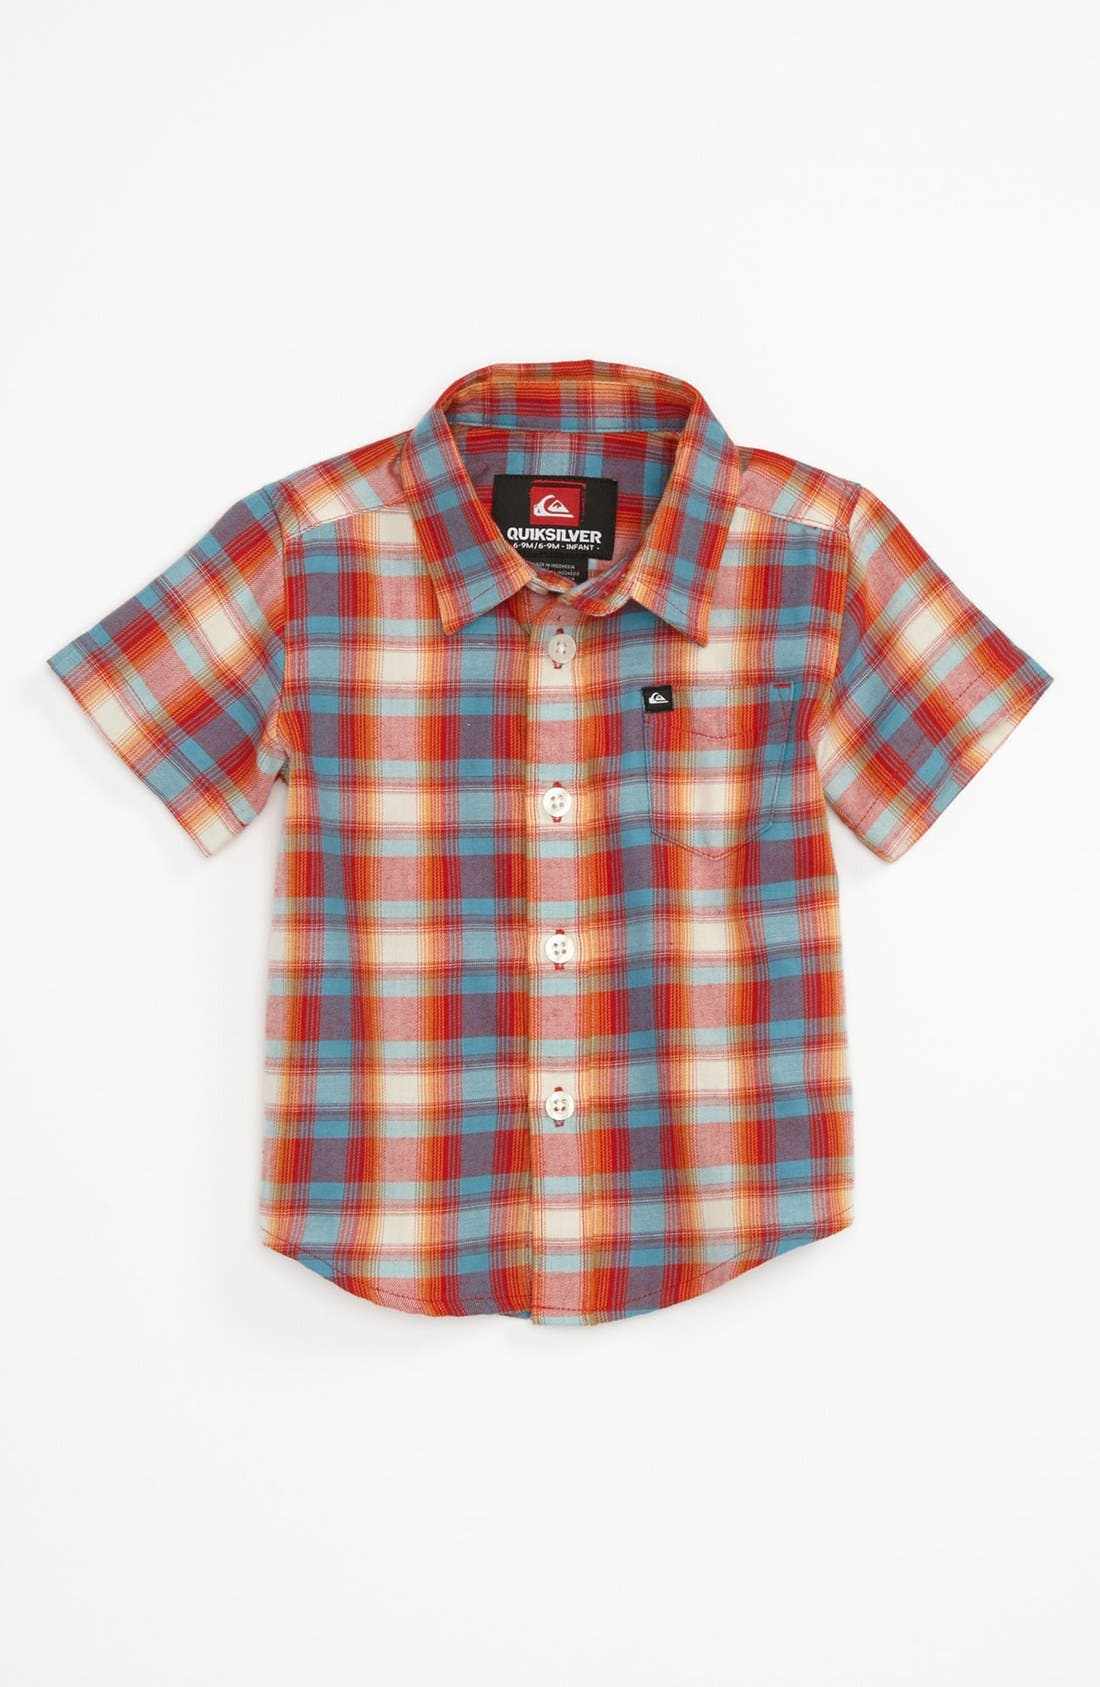 Alternate Image 1 Selected - Quiksilver 'Flash Surf' Woven Shirt (Baby)